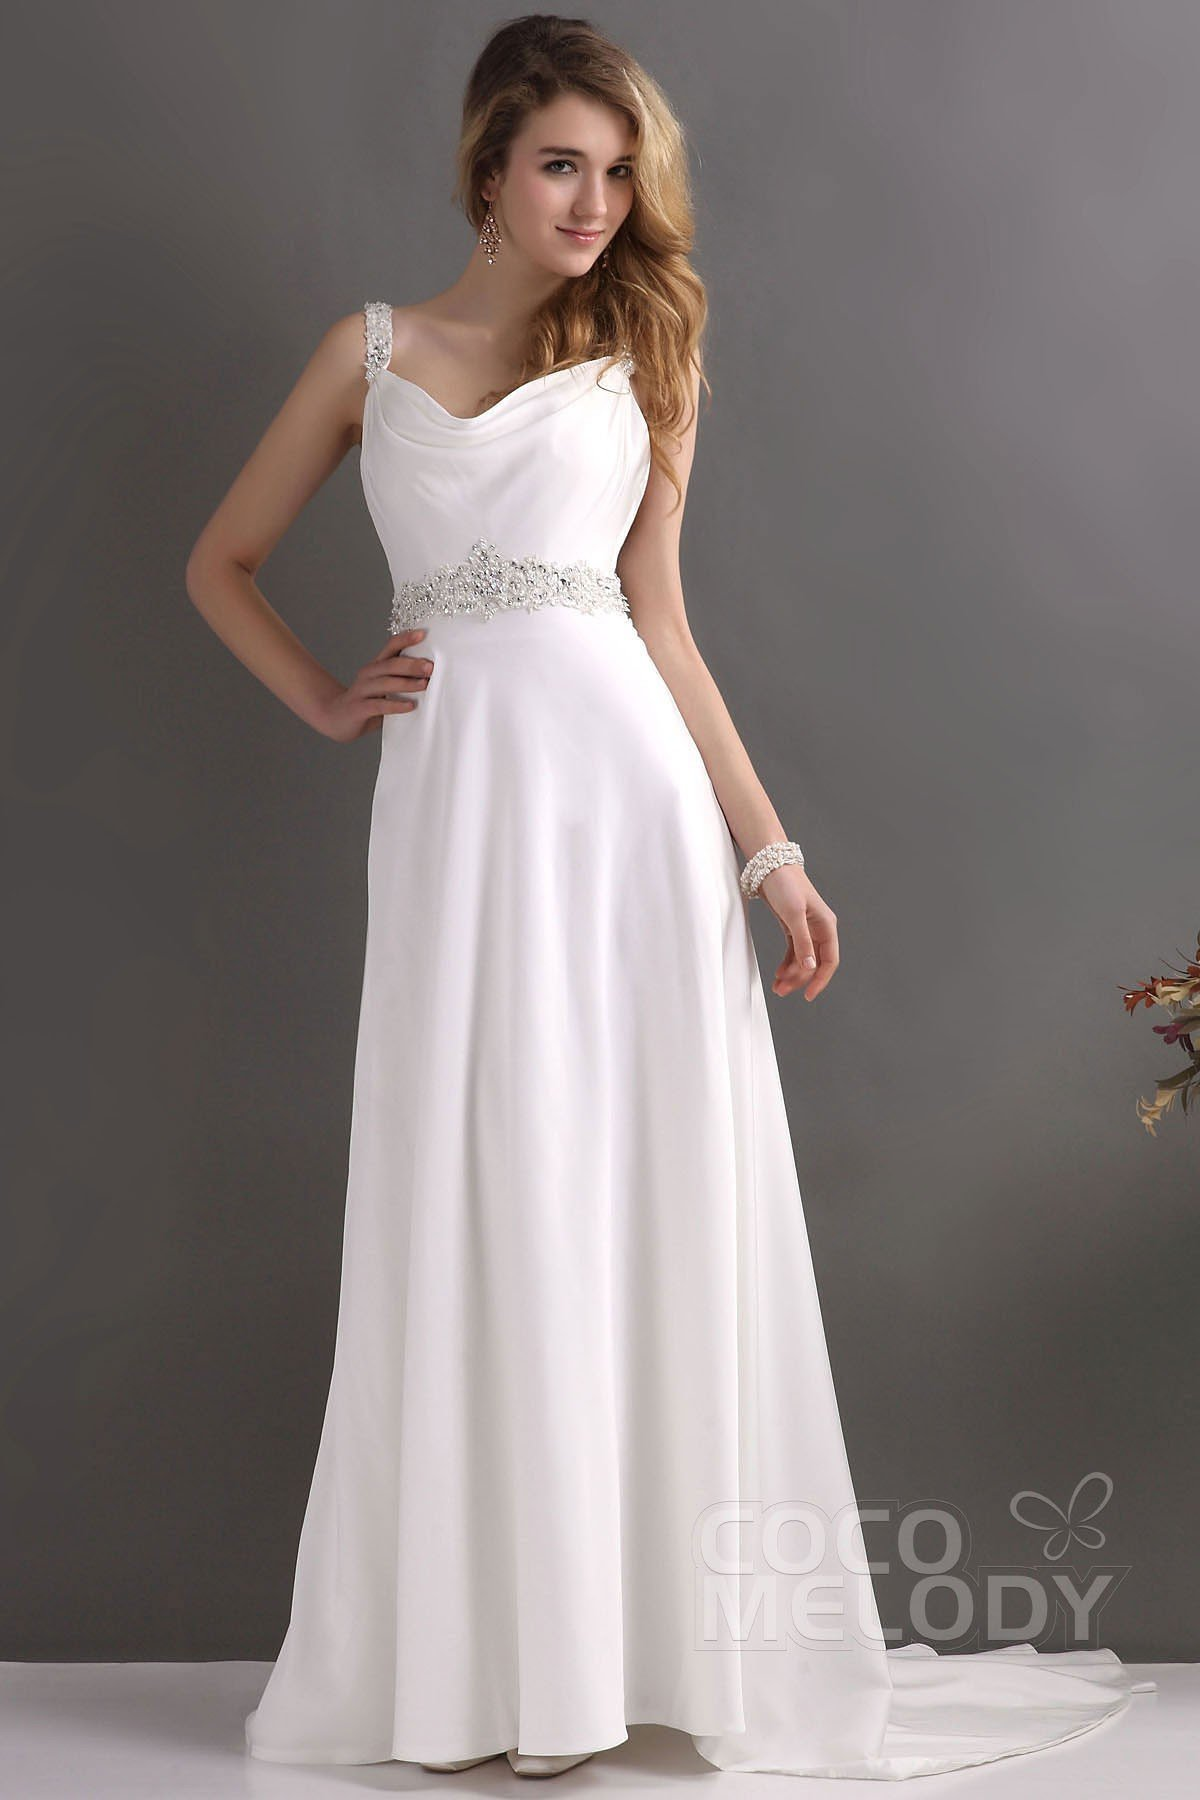 Sheath Column Train Chiffon Wedding Dress Cwvt13001 Cocomelody